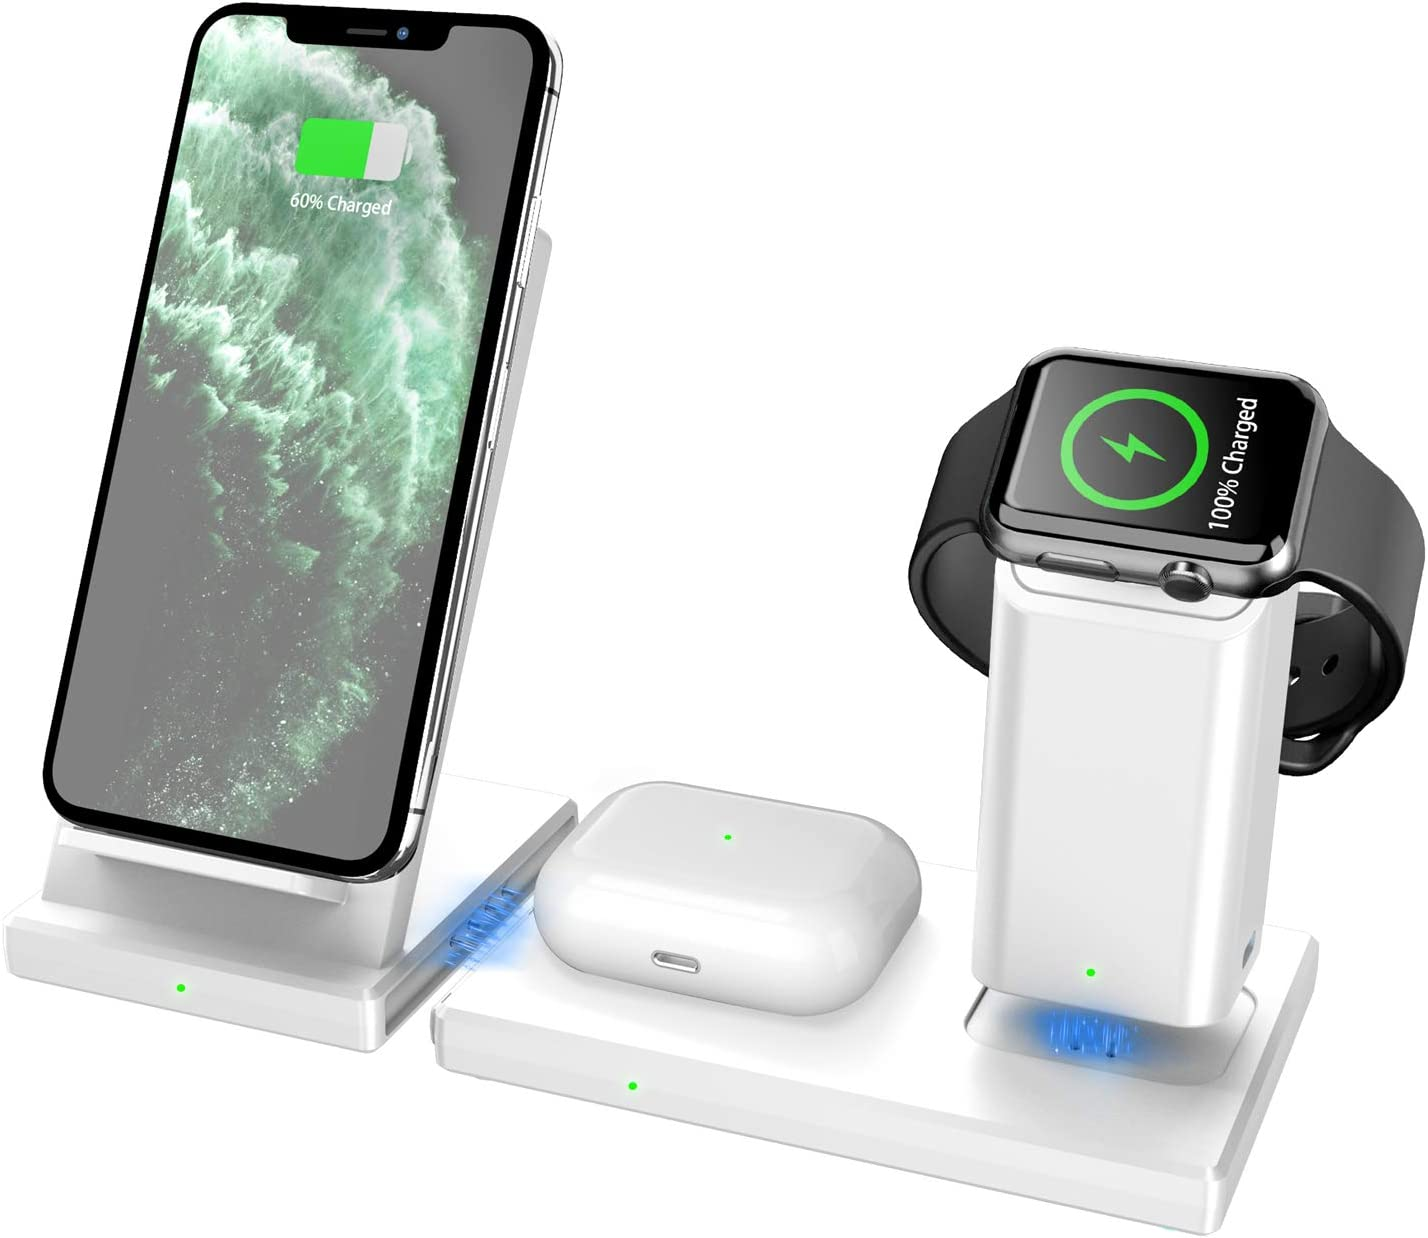 Wireless Charger MANKIW 3 in 1 Fast Charging Station for Apple iWatch AirPods Pro, Wireless Charging Stand Compatible for iPhone 11/11Pro/11Pro Max/XR/Xs/Xs Max/X/8/8Plus Samsung Galaxy(White)